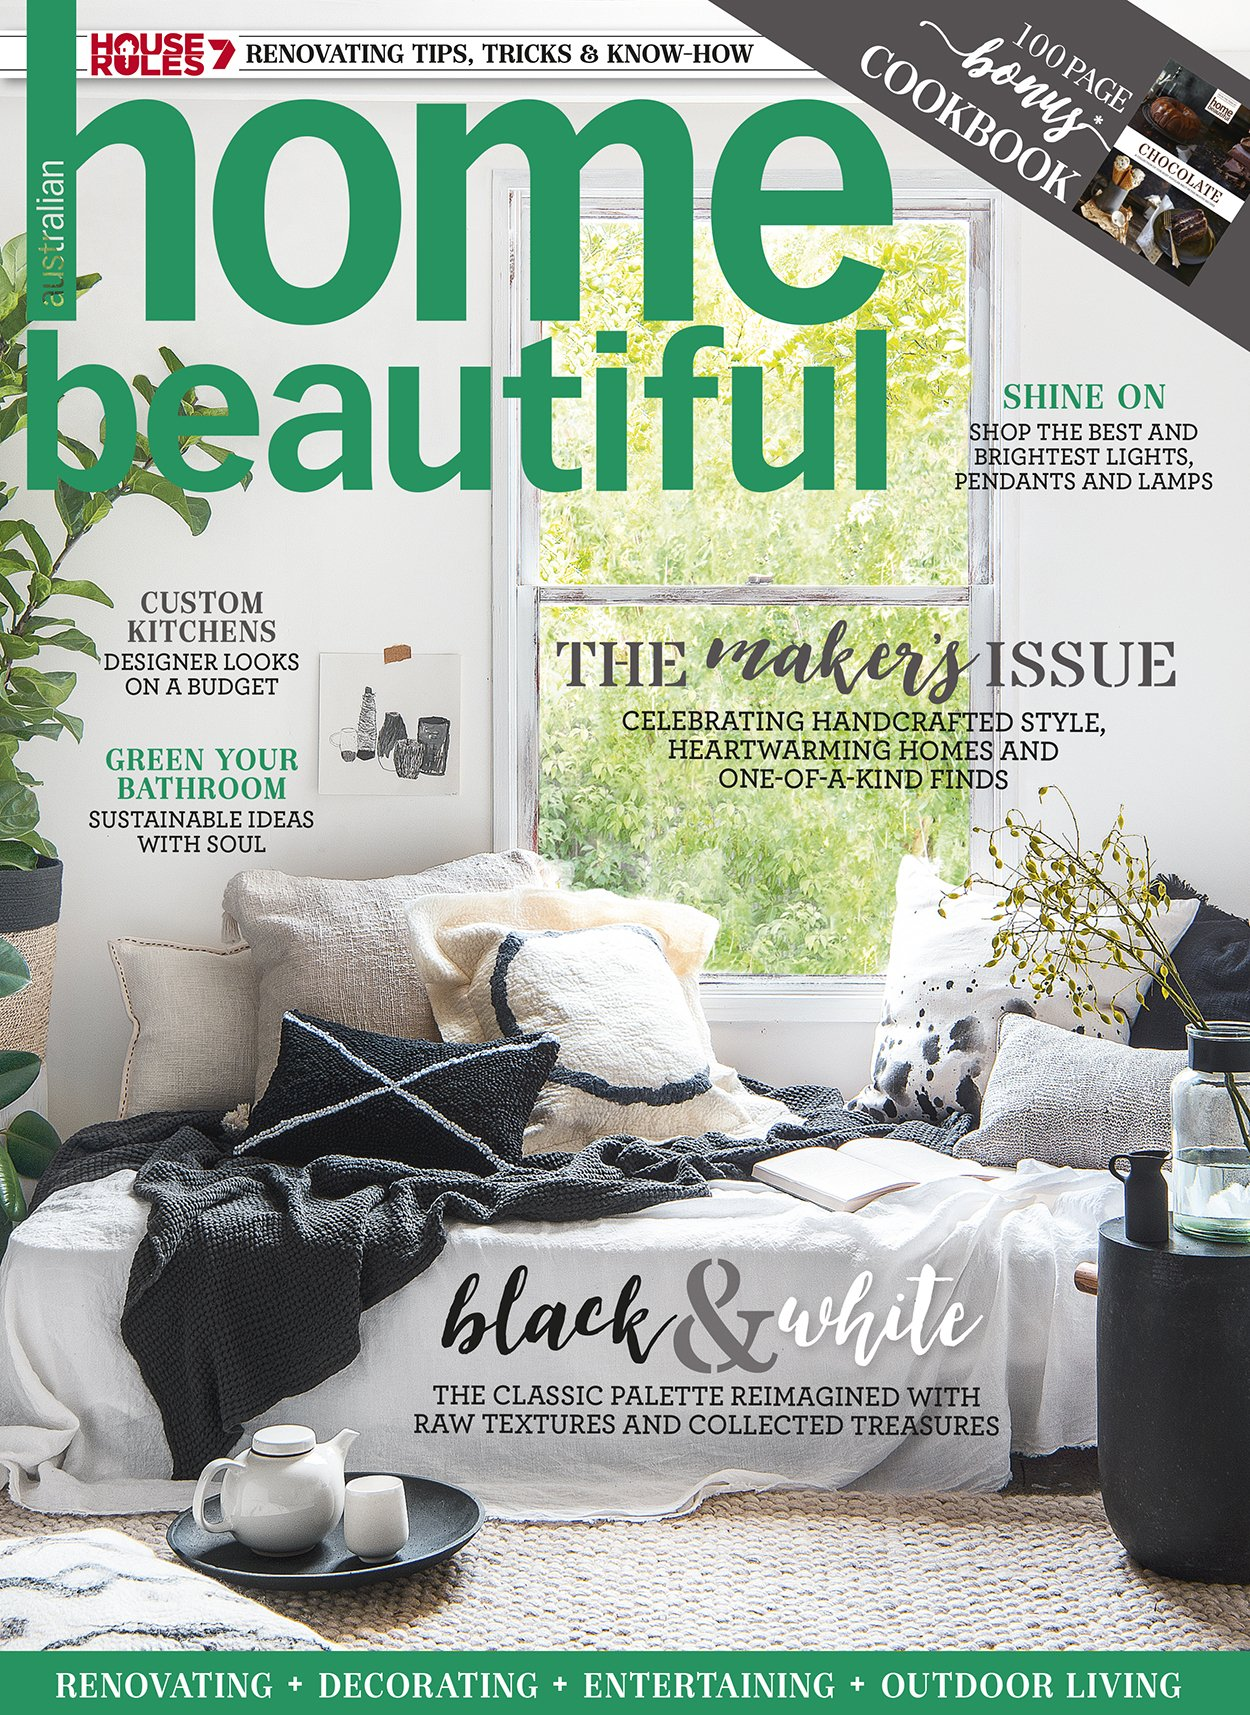 Home Beautiful Home Beautiful Is The Perfect Magazine To Promote Over Easter